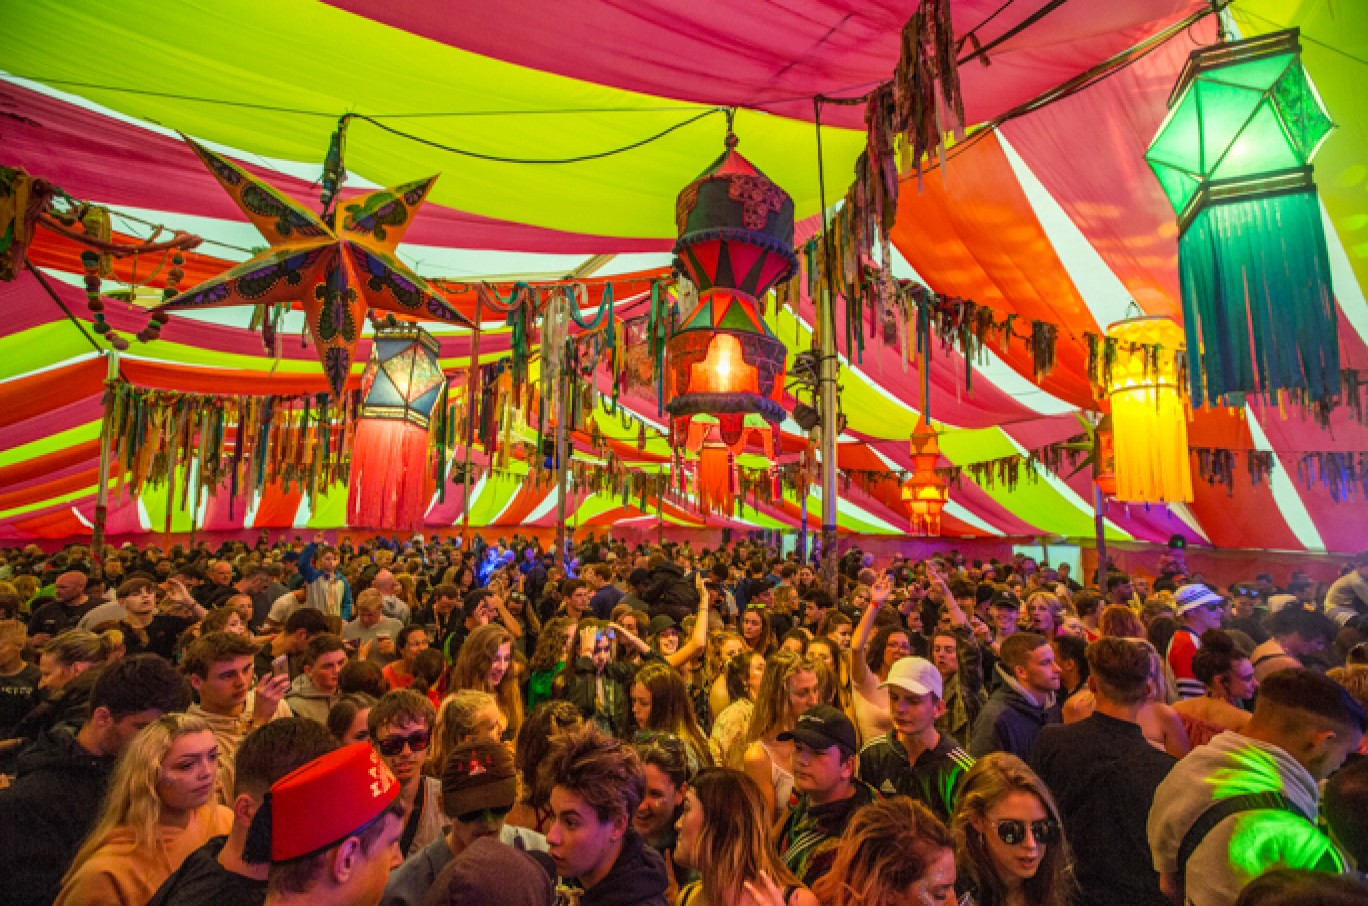 6_130-camp-bestival-friday-236611501585106